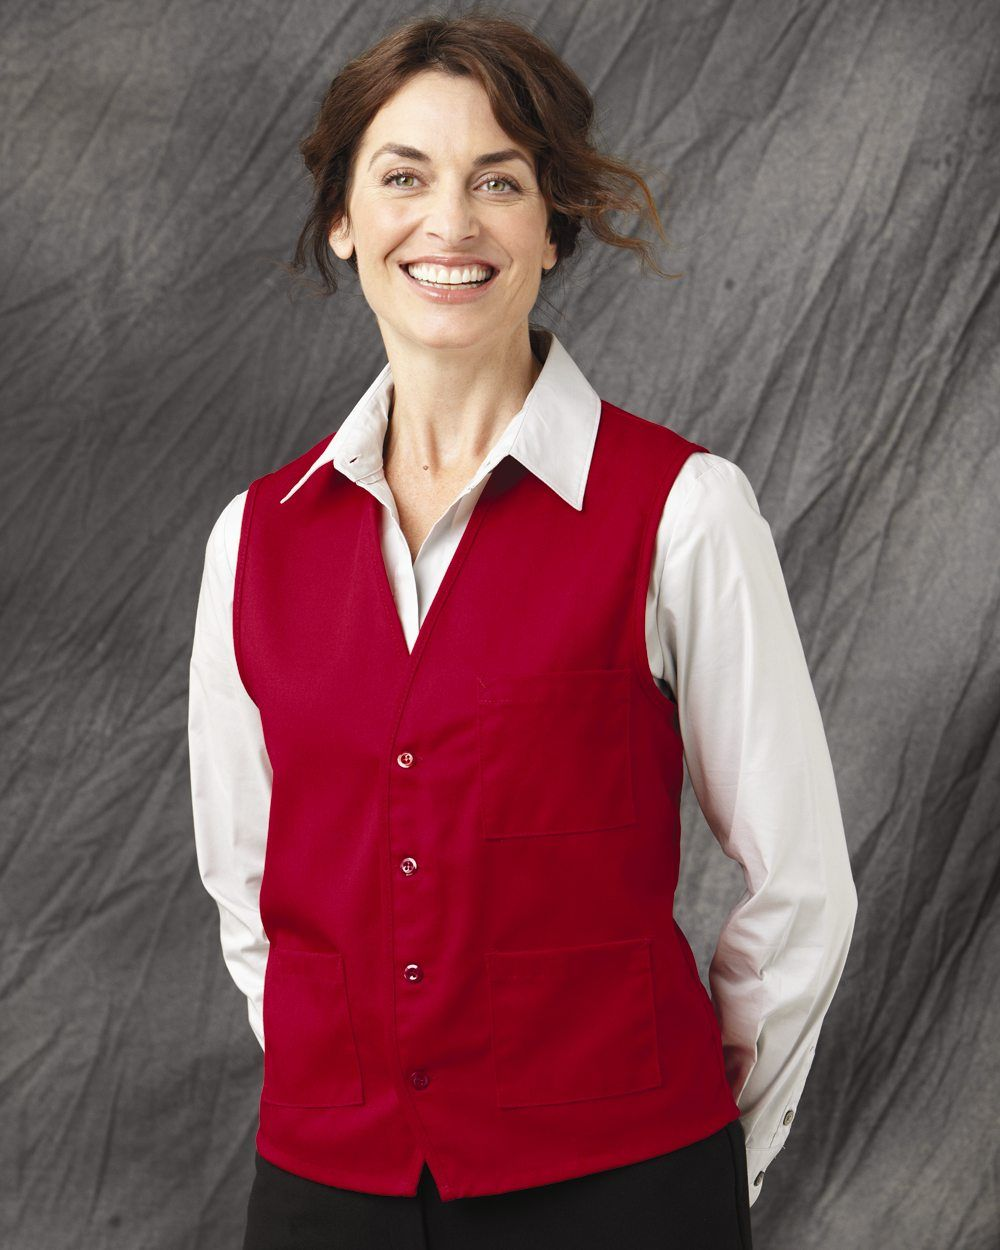 From chef designs comes this vneck button front vest